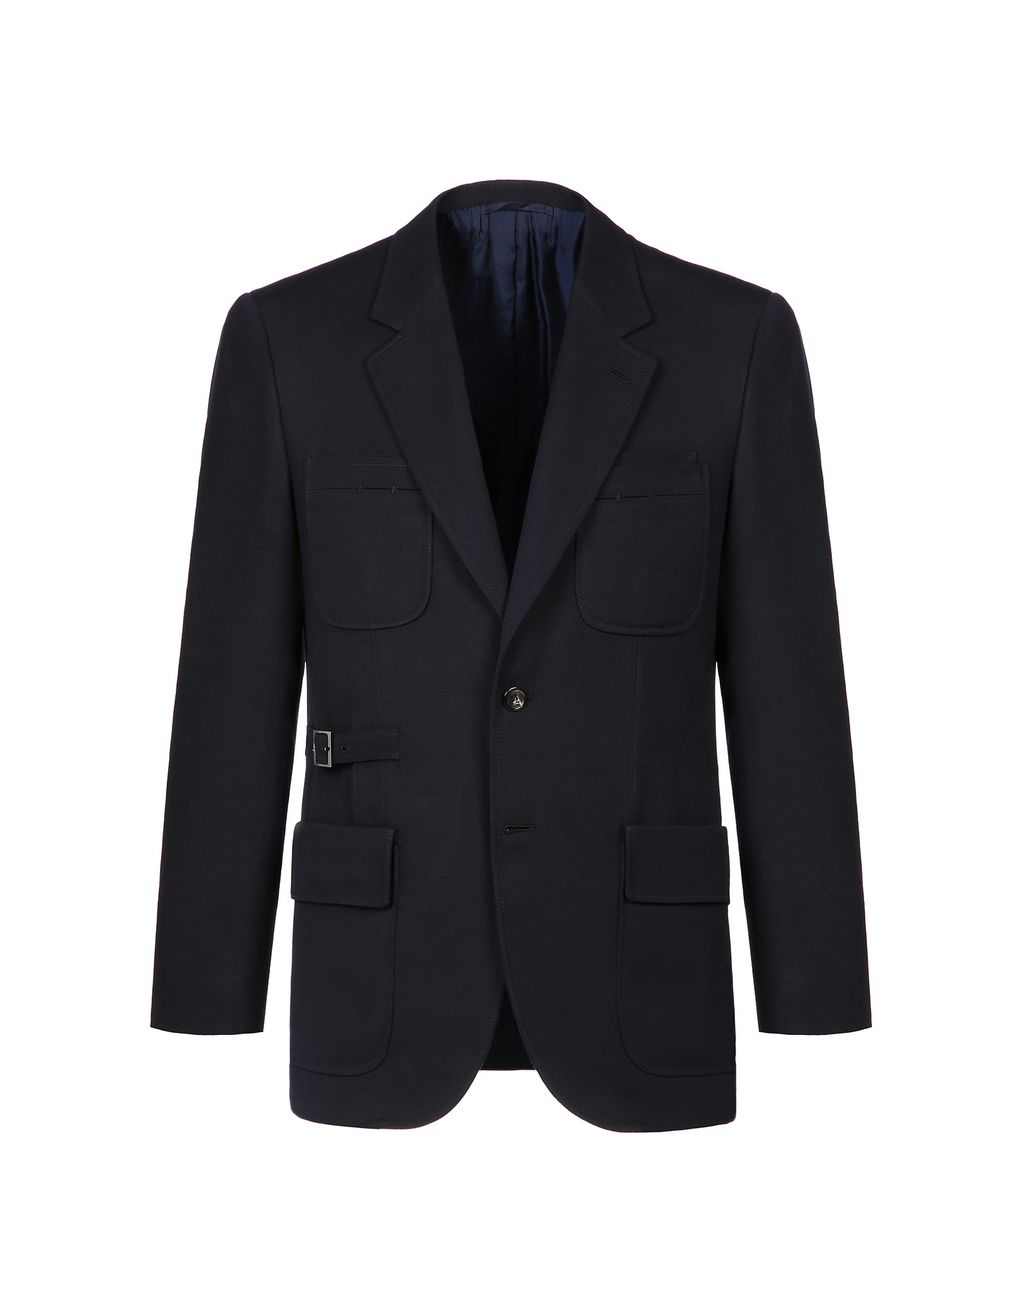 BRIONI Veste New Travel bleu marine Formal Jacket [*** pickupInStoreShippingNotGuaranteed_info ***] f